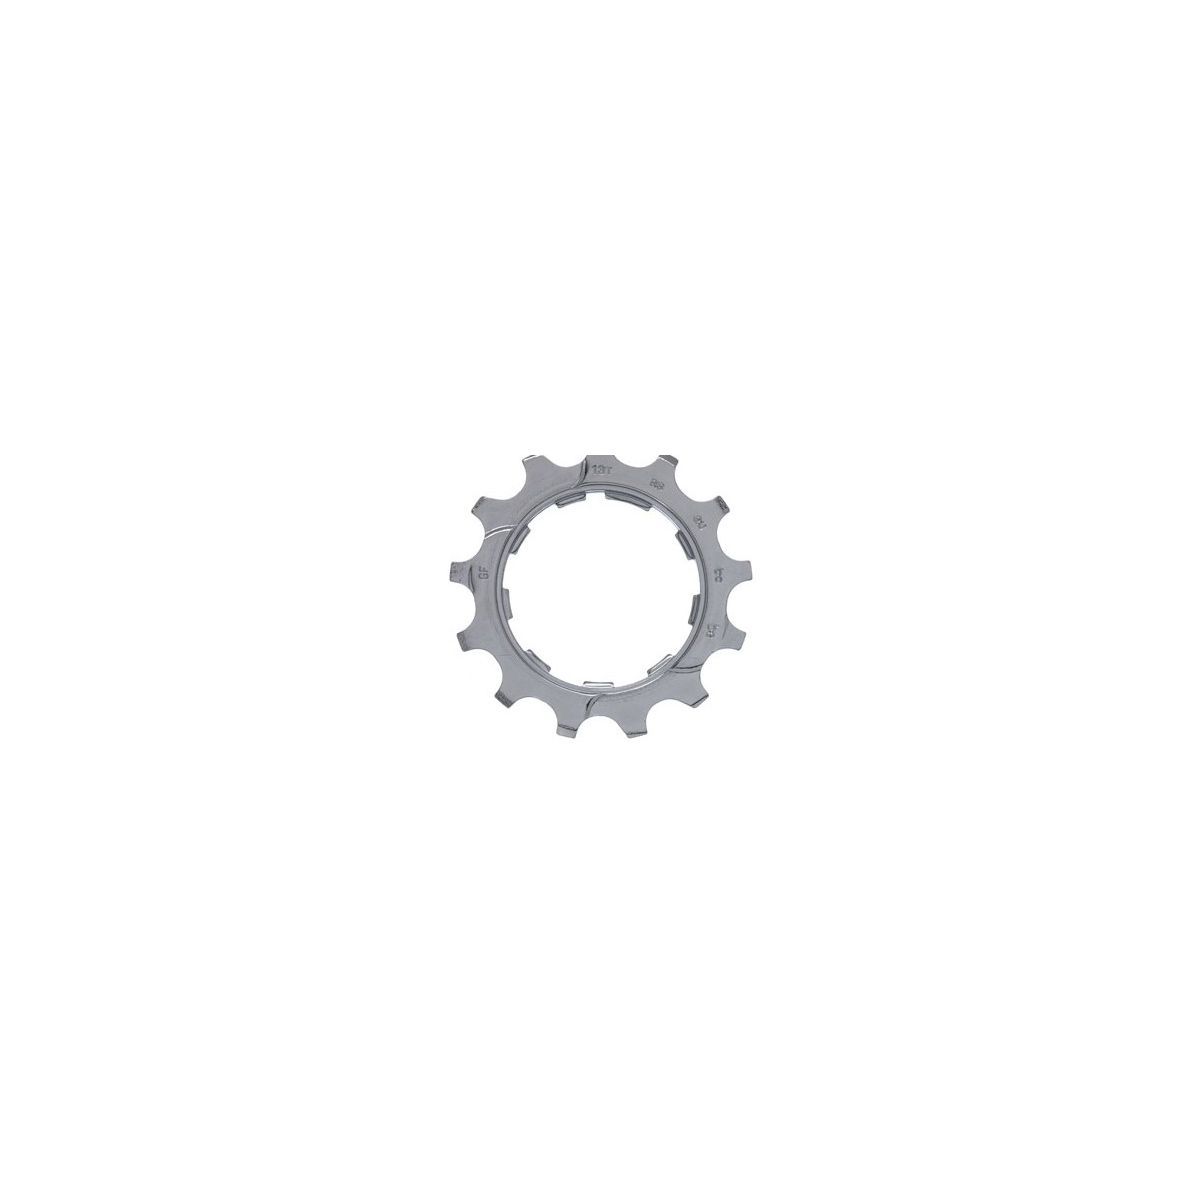 CS-HG90 9-speed, 13-tooth replacement sprocket